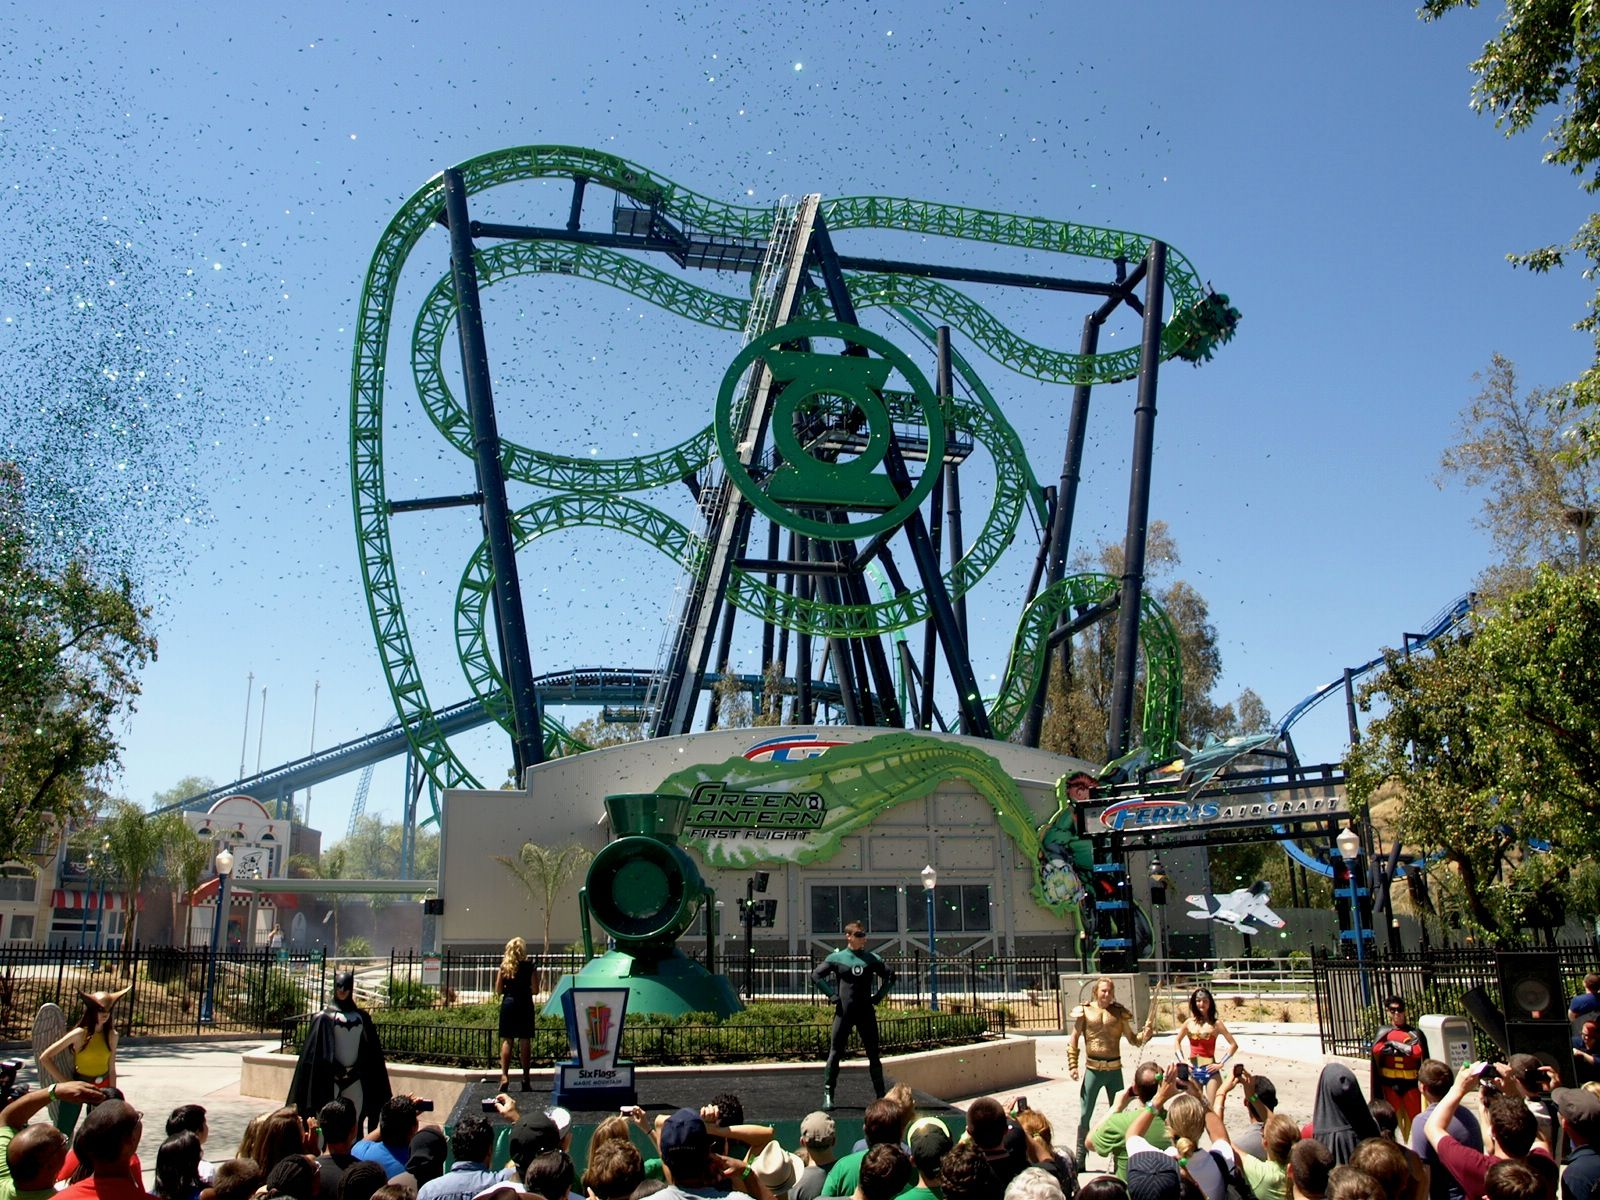 The Grand Opening Of Green Lantern First Flight At Six Flags Magic Mountain Roller Coaster Ride Theme Parks Rides Best Roller Coasters